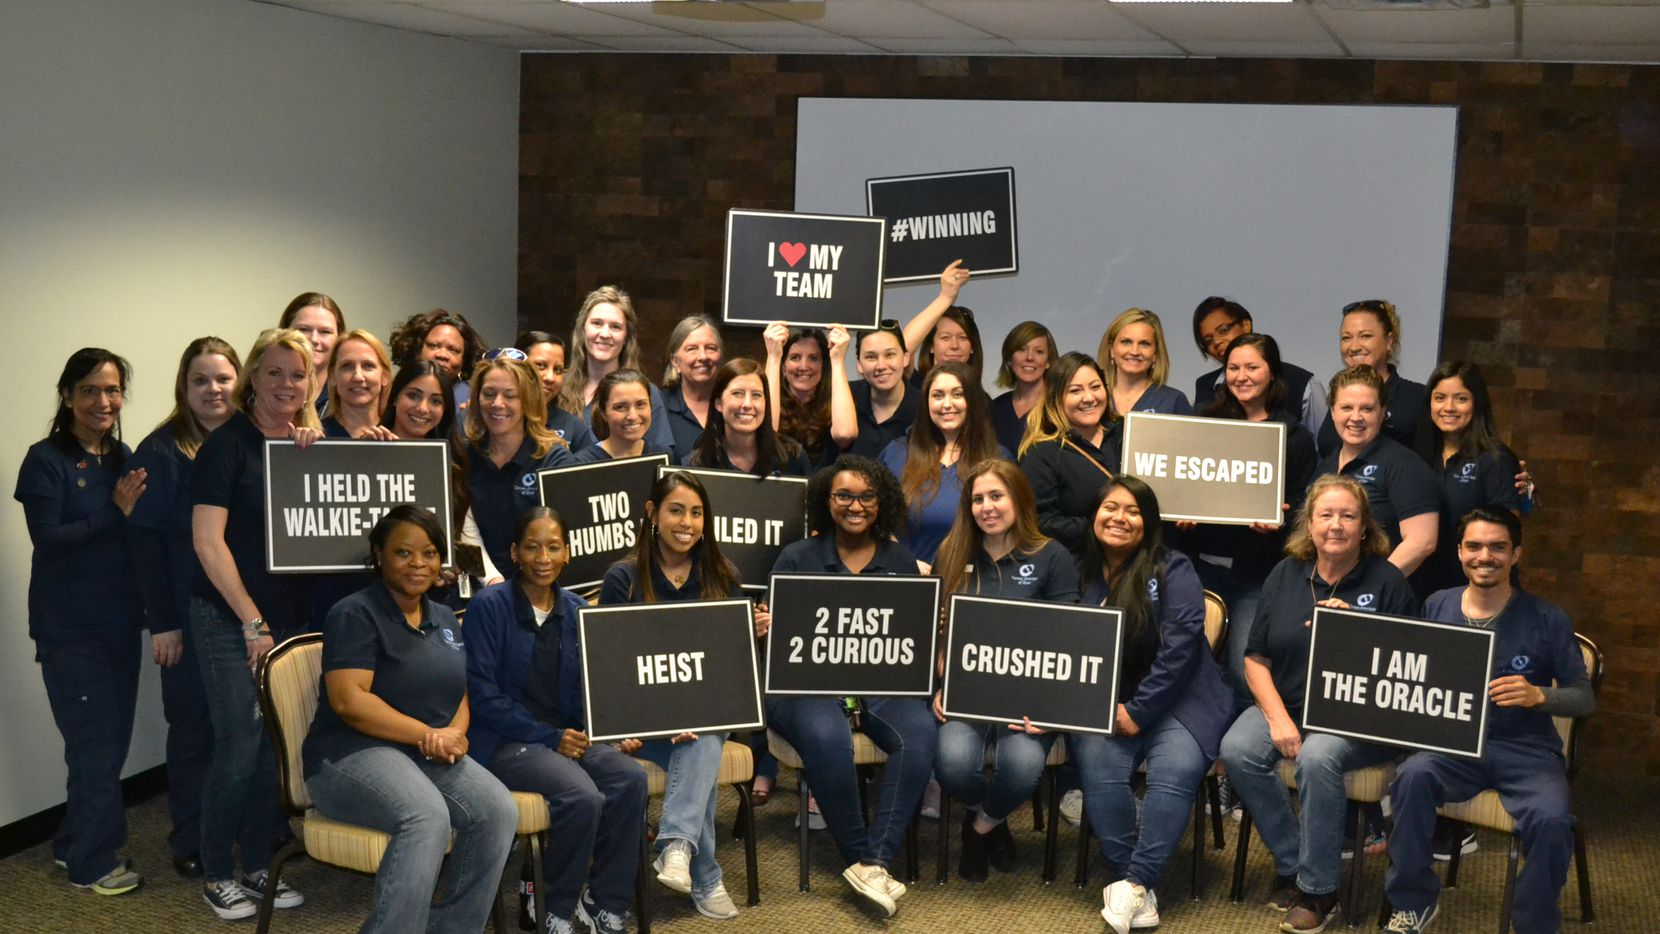 Cornea Associates of Texas workers celebrate after conquering an escape room challenge.